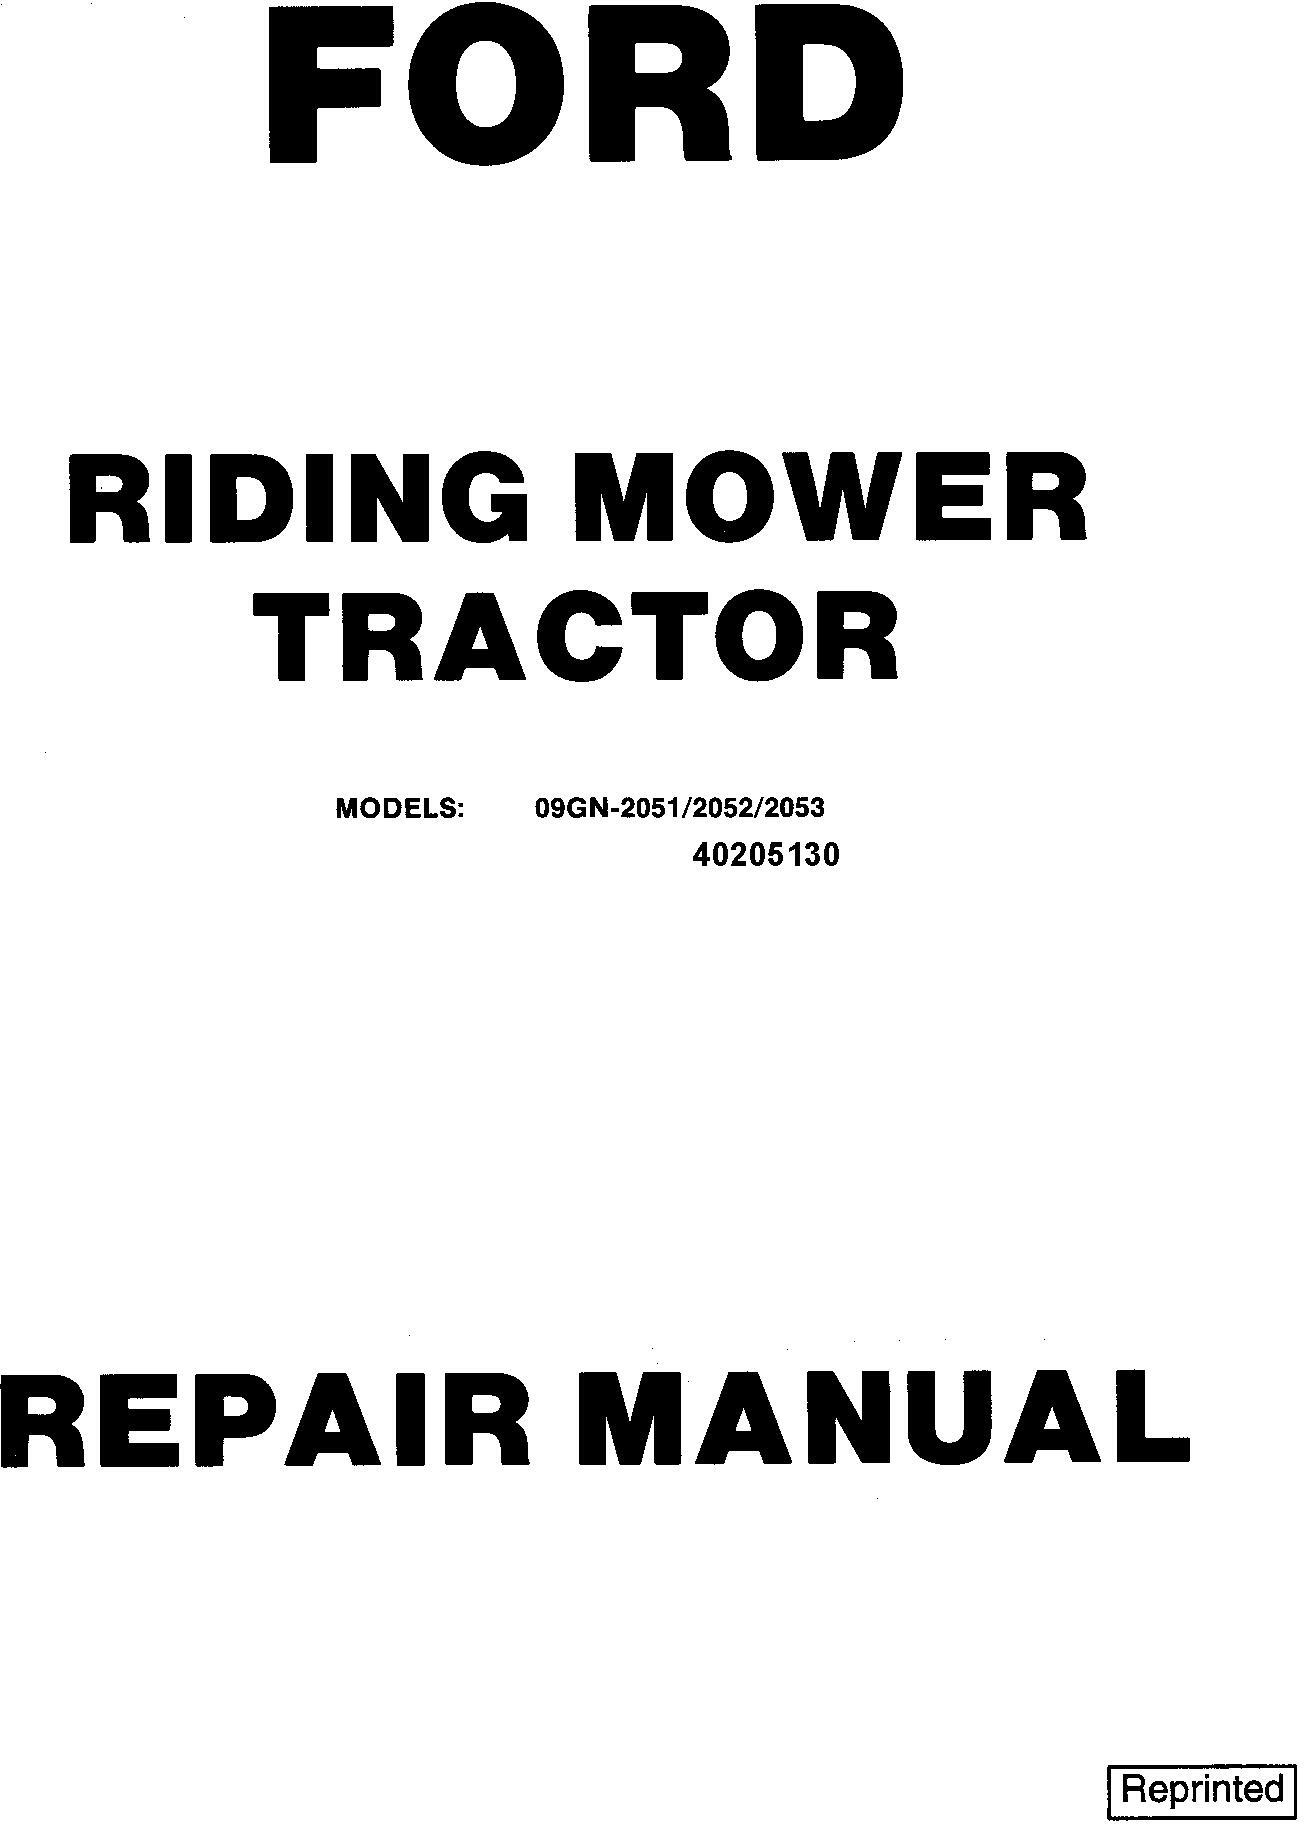 Ford 09GN-2051/2052/2053 / 2054/2055/2056 Riding Mower